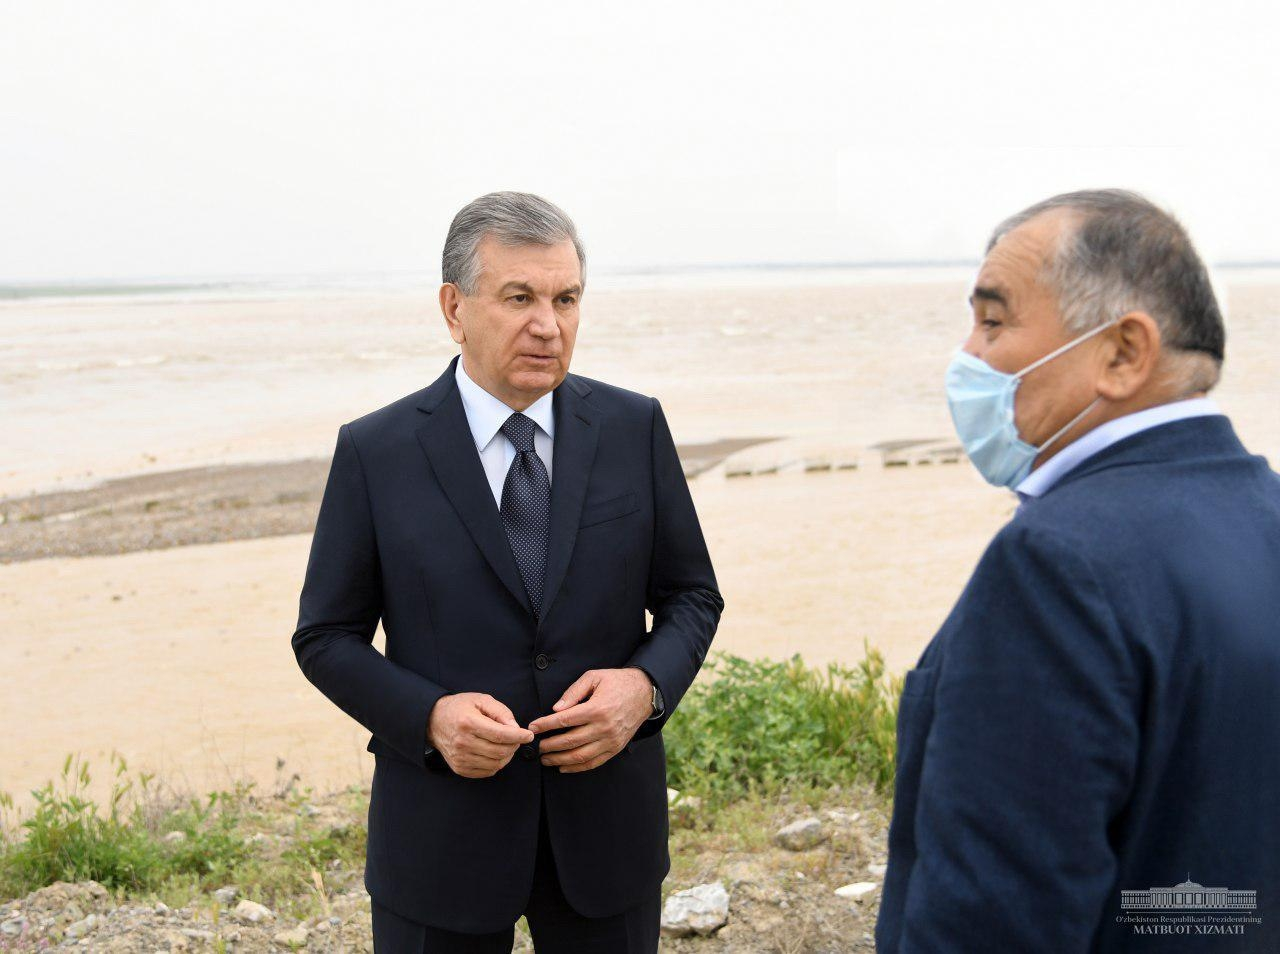 Flood for thought: Mirziyoyev at the site of the dam burst in the Sirdaryo region. (Photo: Presidential press service)